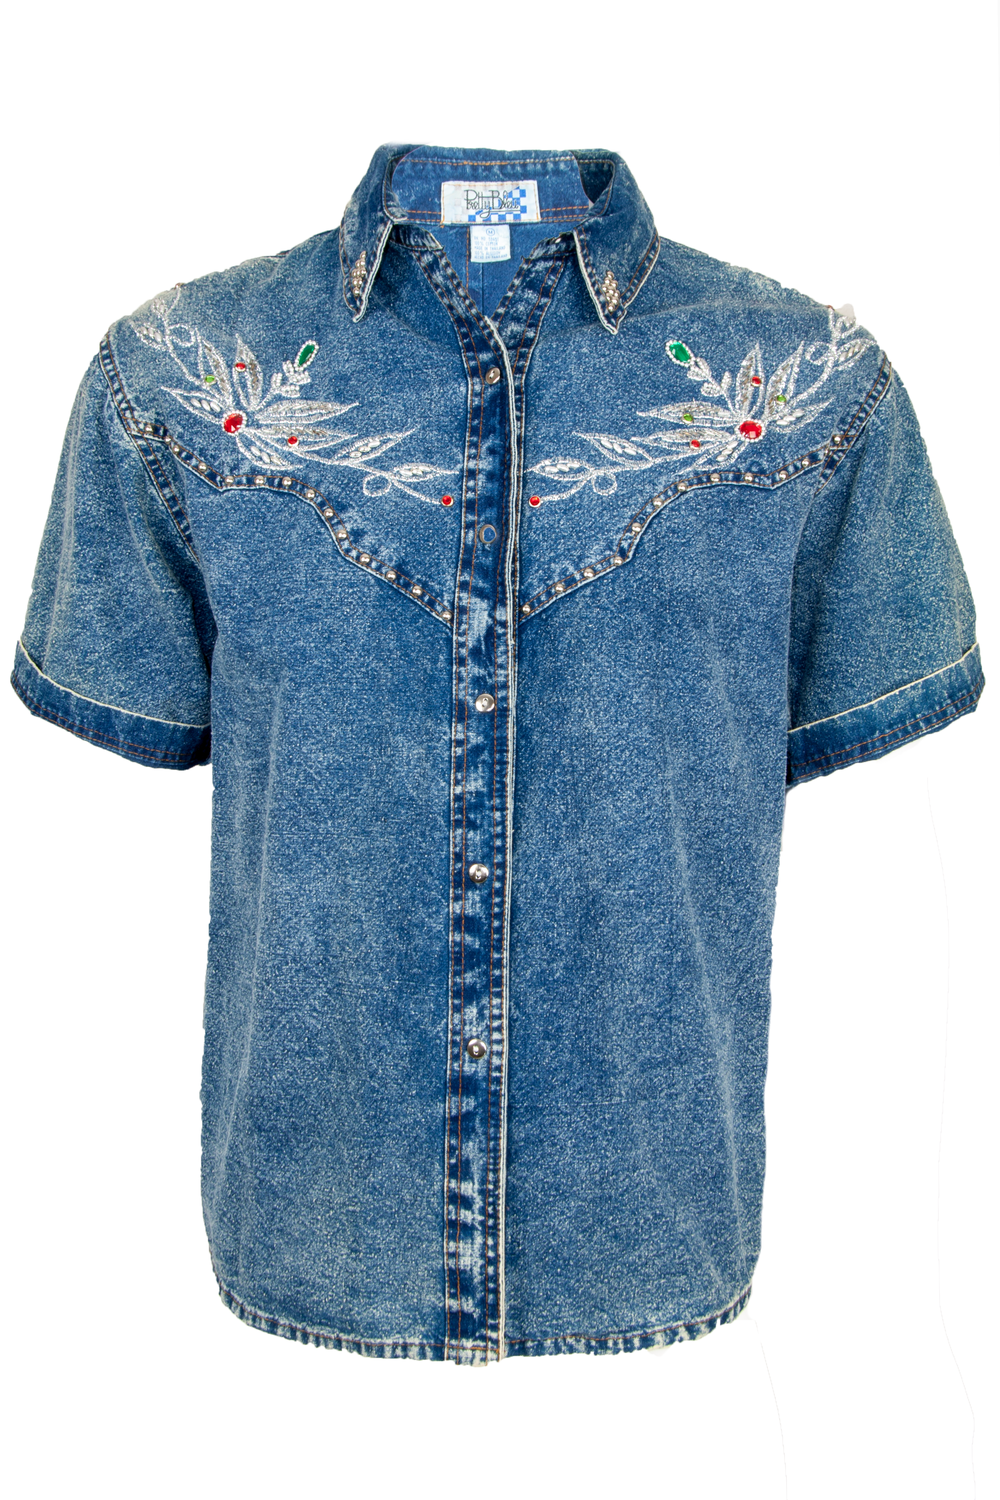 Front view of a vintage textured denim button up with metallic threading at chest silver studding throughout multicolor gems and front button closure.